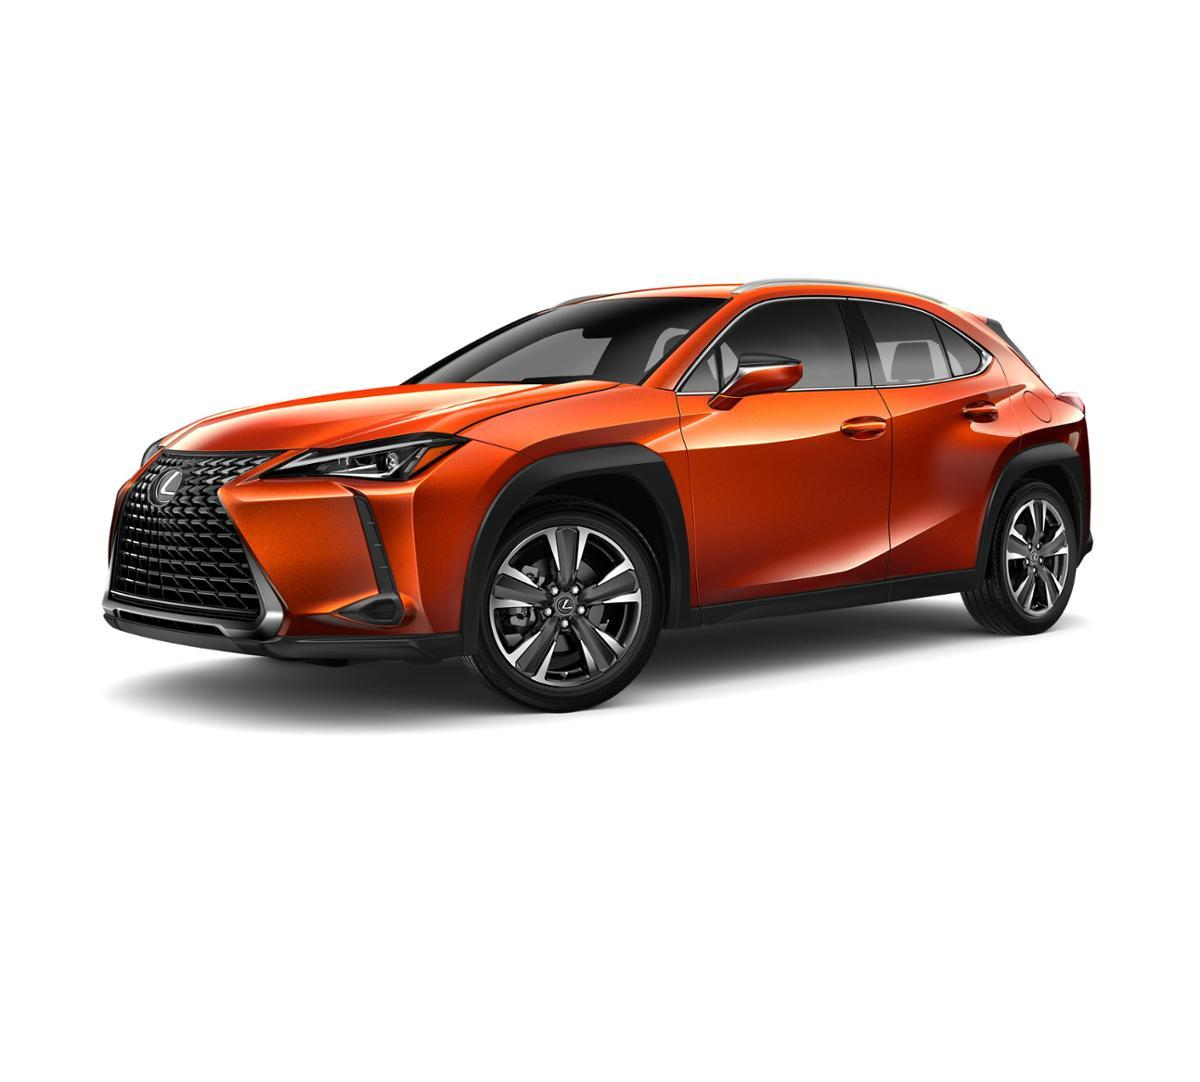 New 2019 Lexus UX 200 For Sale In Farmingdale, NY